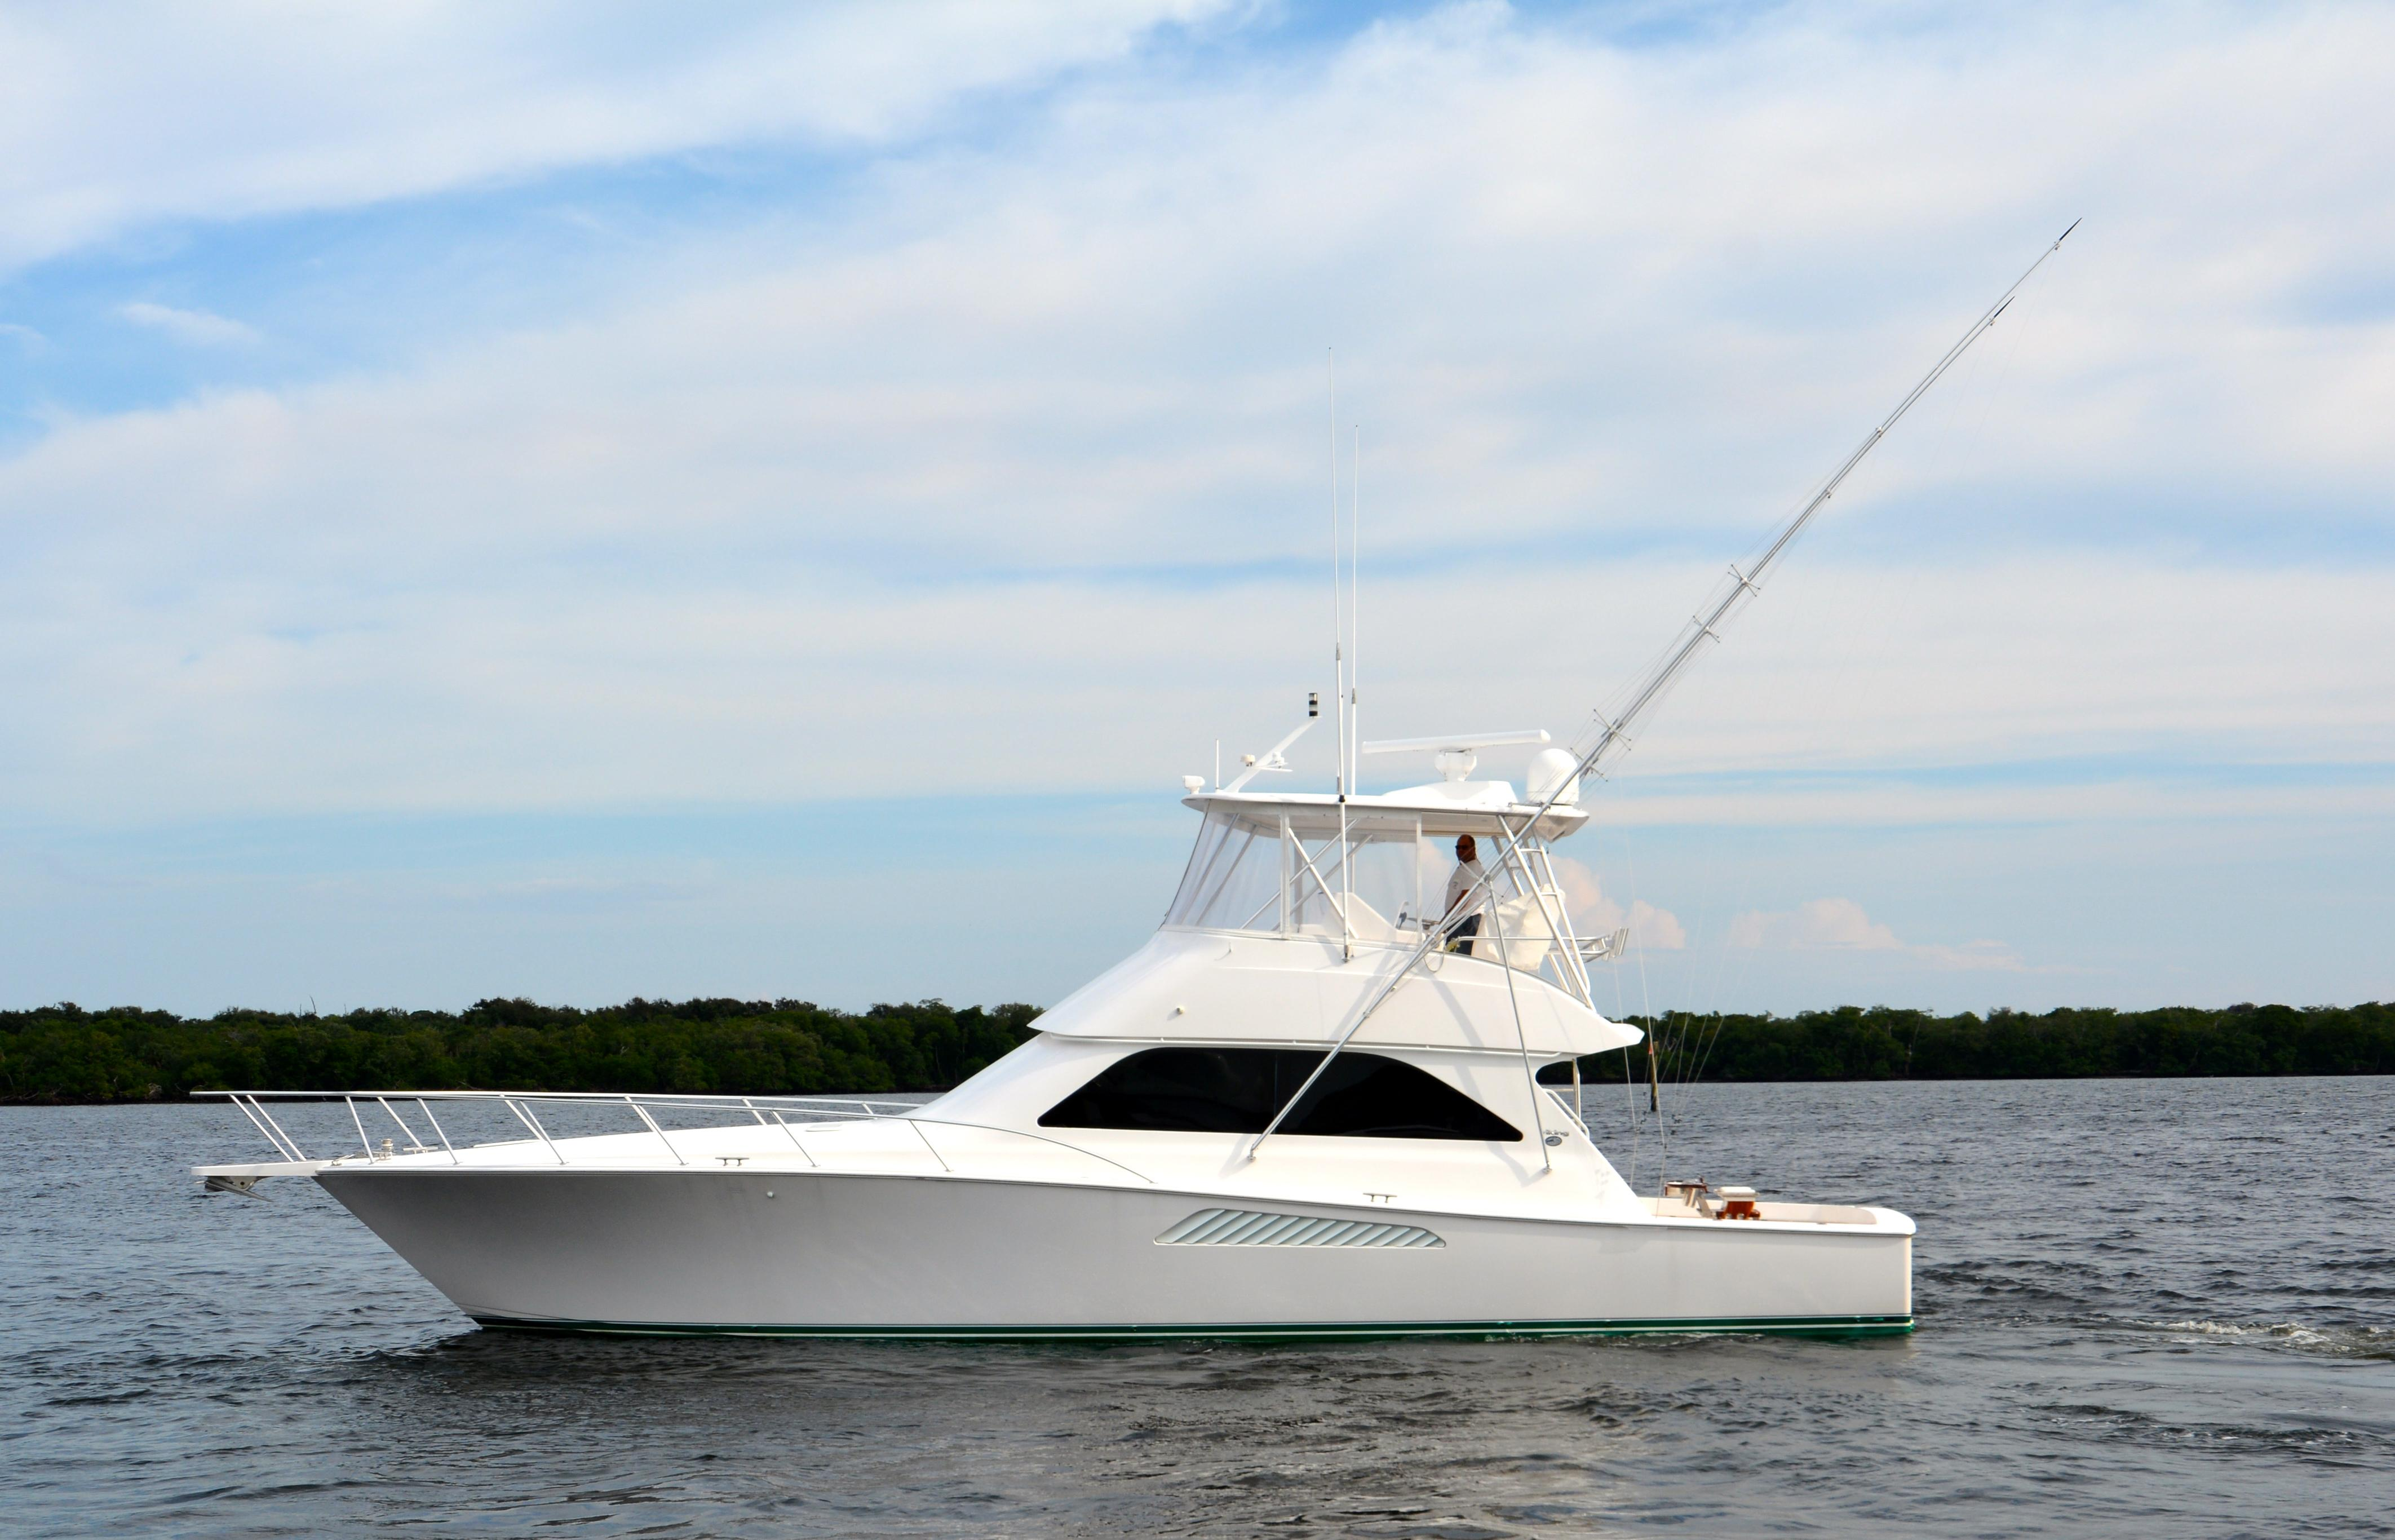 48 viking yachts 2006 time flys for sale in manteo north for Ocean yachts 48 motor yacht for sale